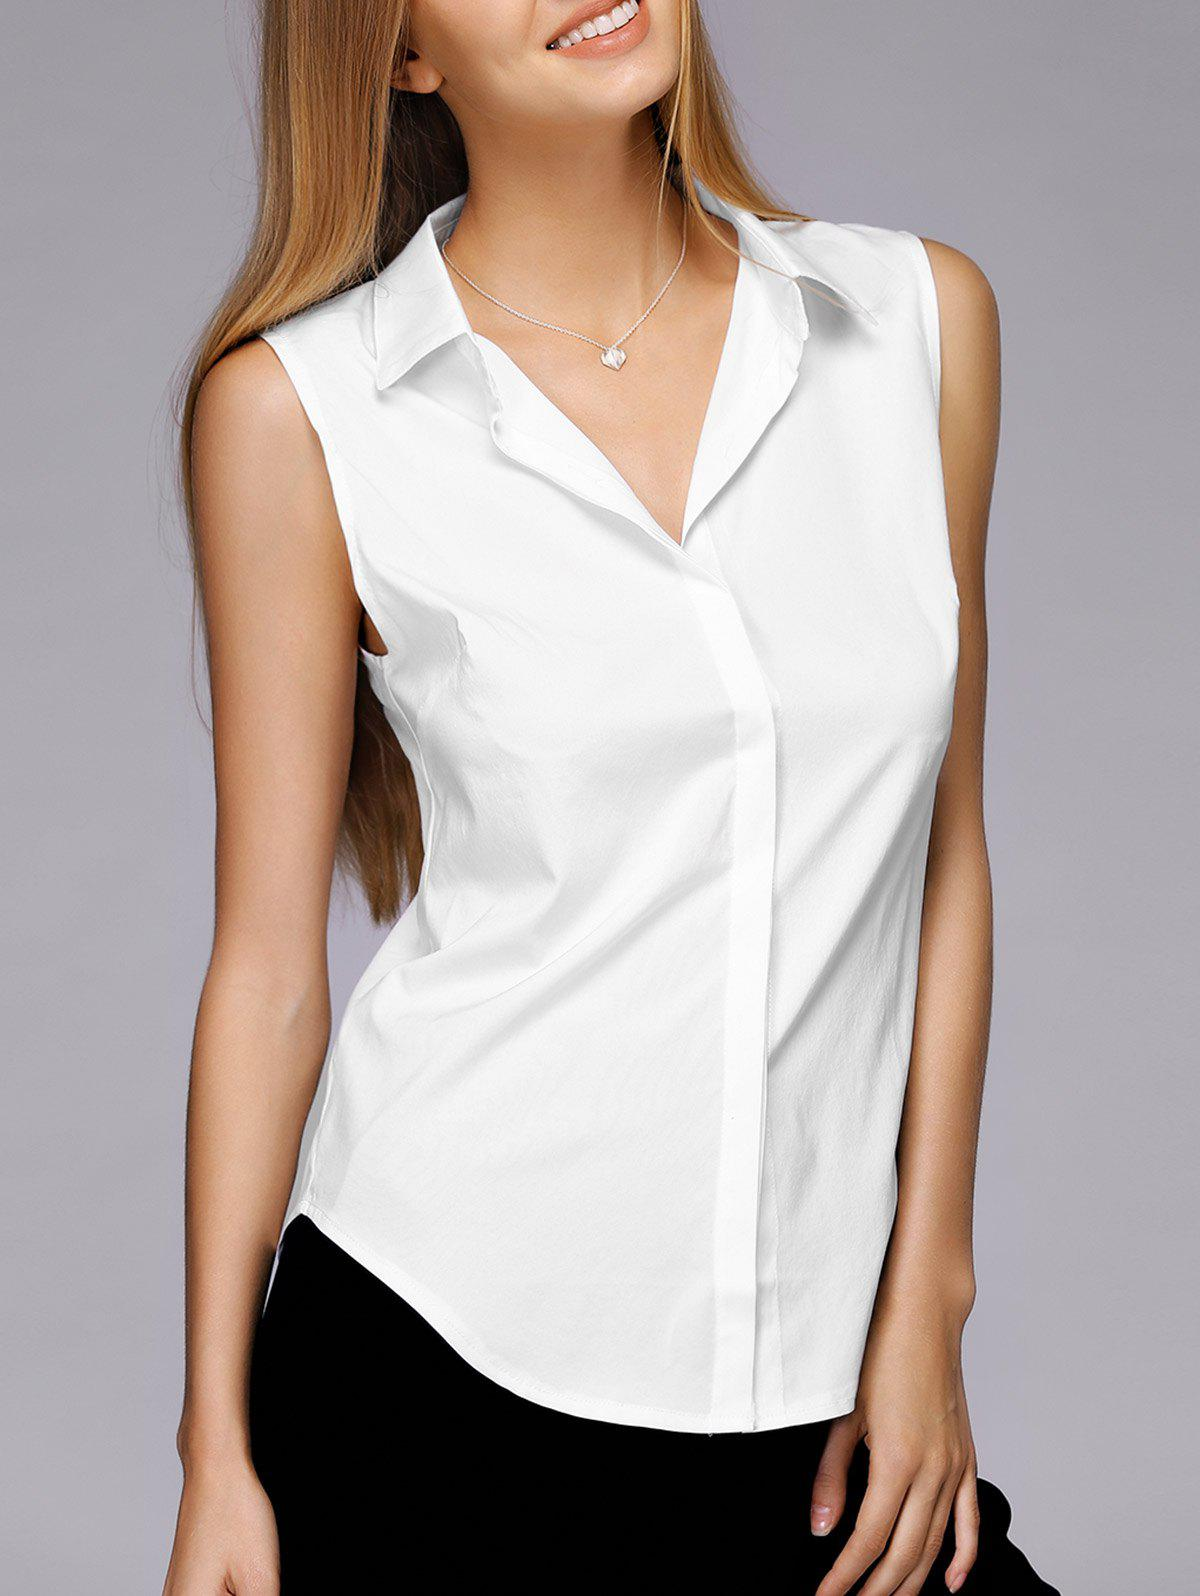 Simple Design Shirt Collar Sleeveless Solid Color Shirt For Women - WHITE XL